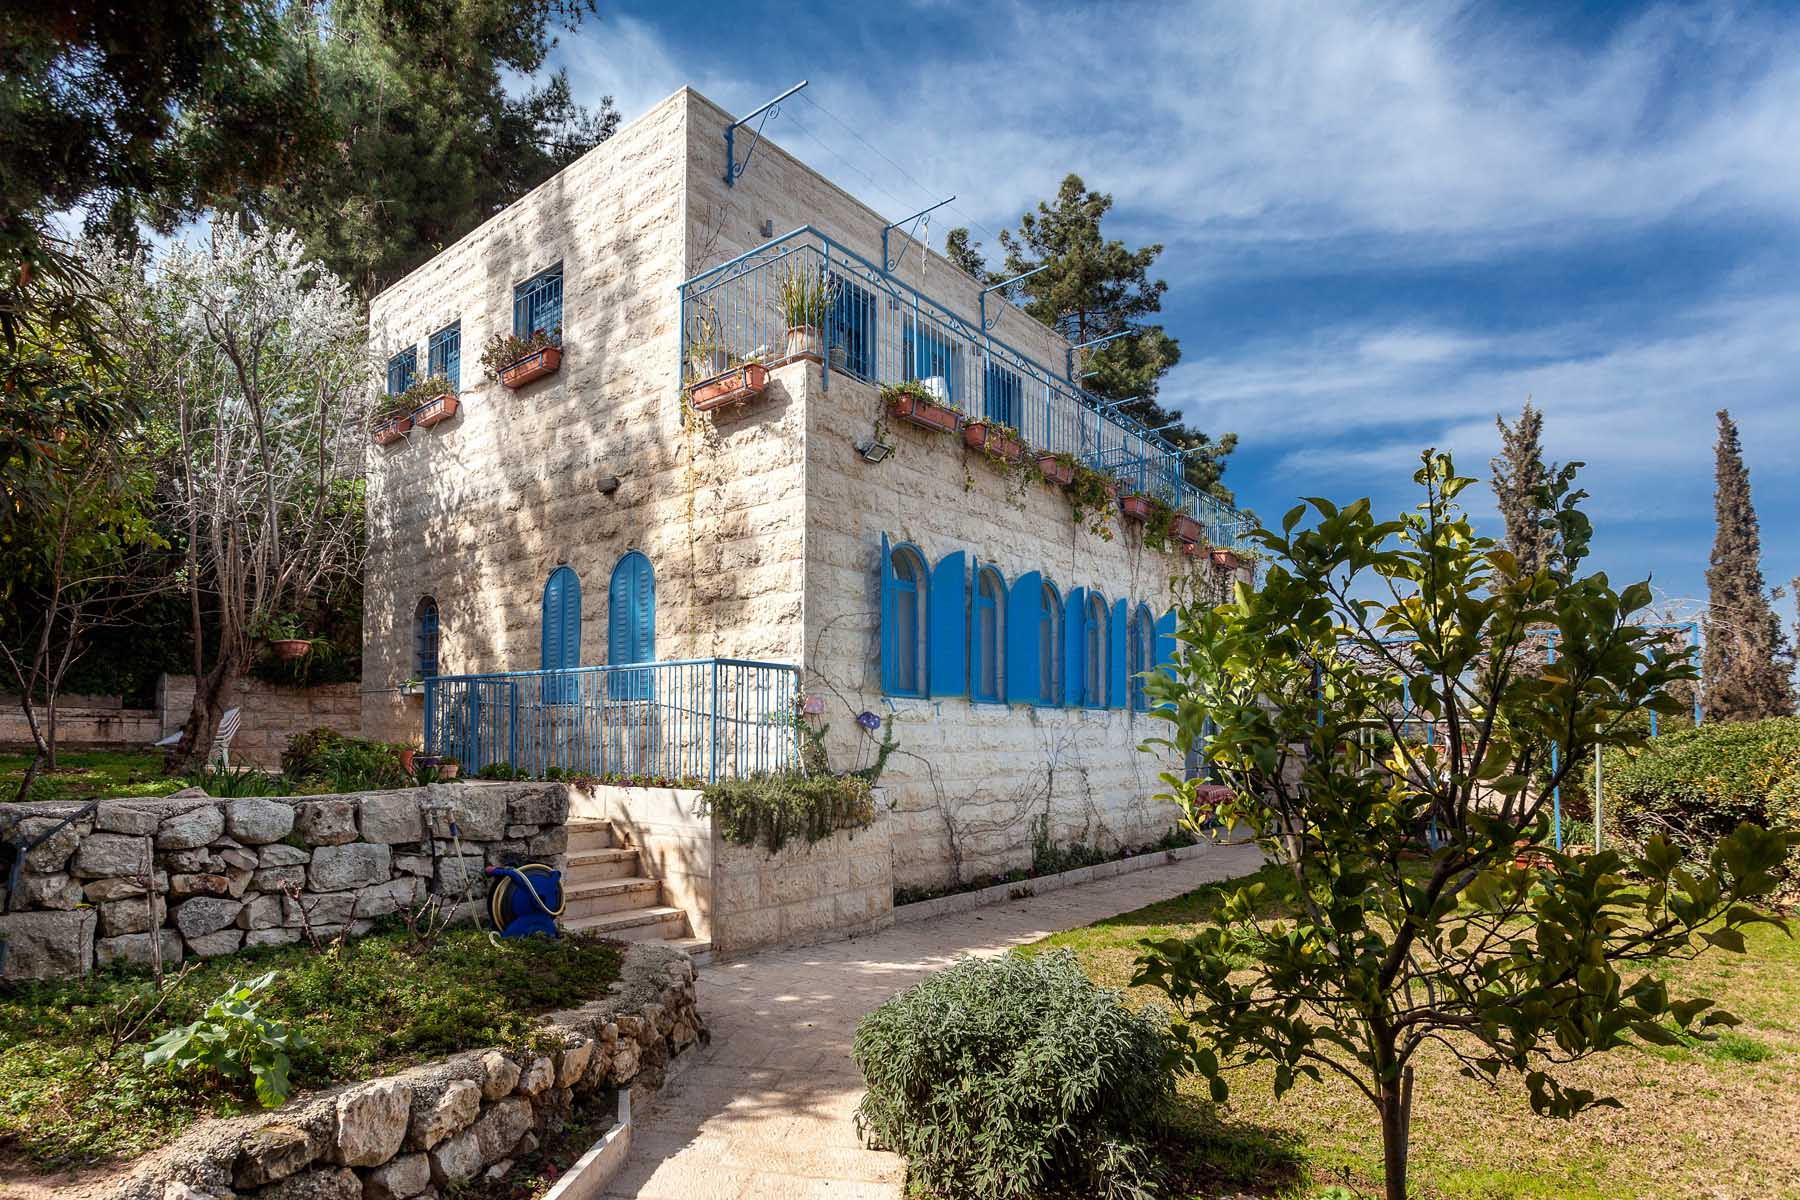 Single Family Home for Sale at Extraordinary Villa in Historic Ein Karem Village Jerusalem, Israel Israel